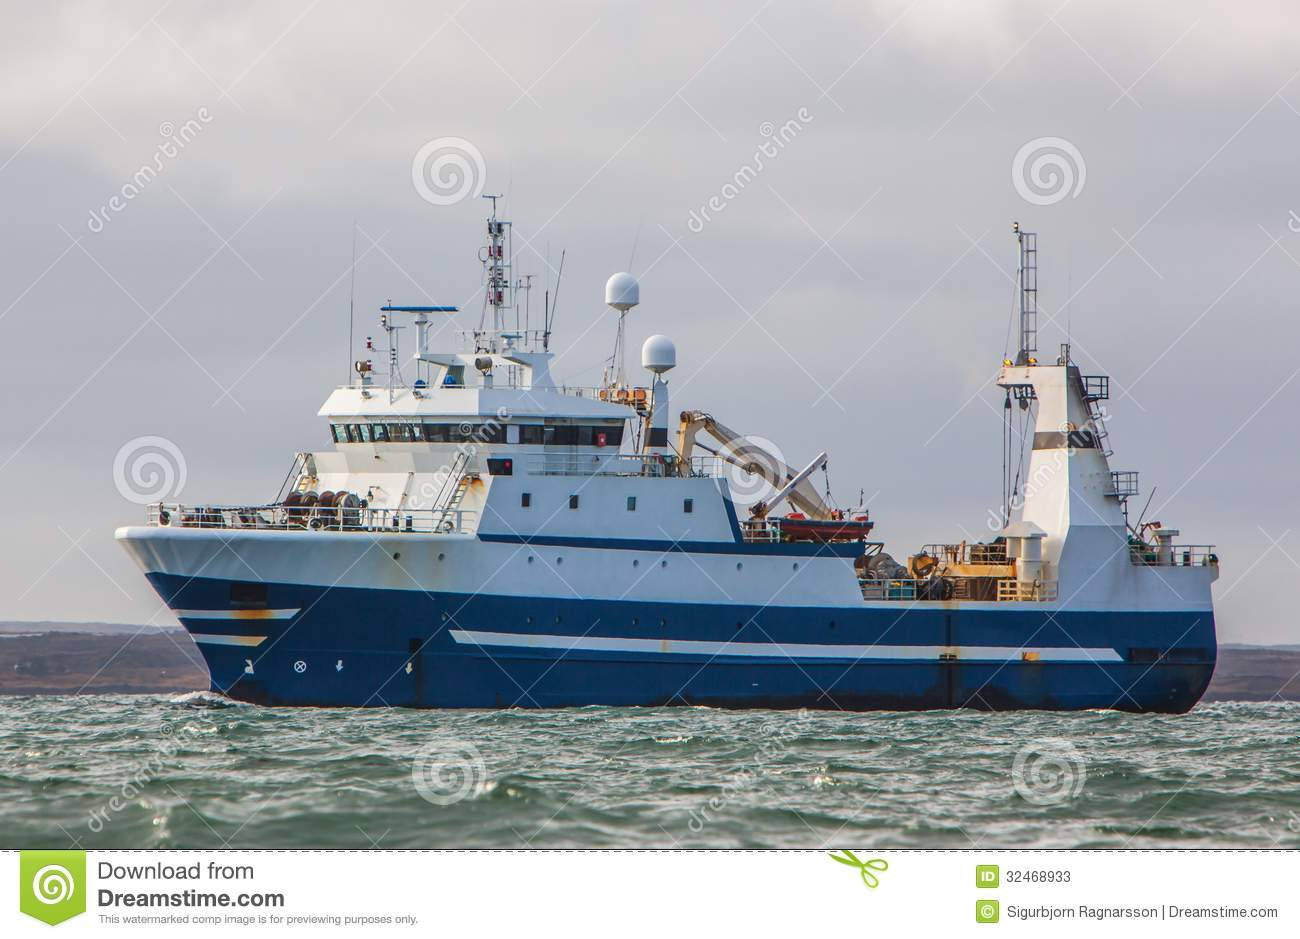 Icelandic offshore commercial fishing factory stern trawler.